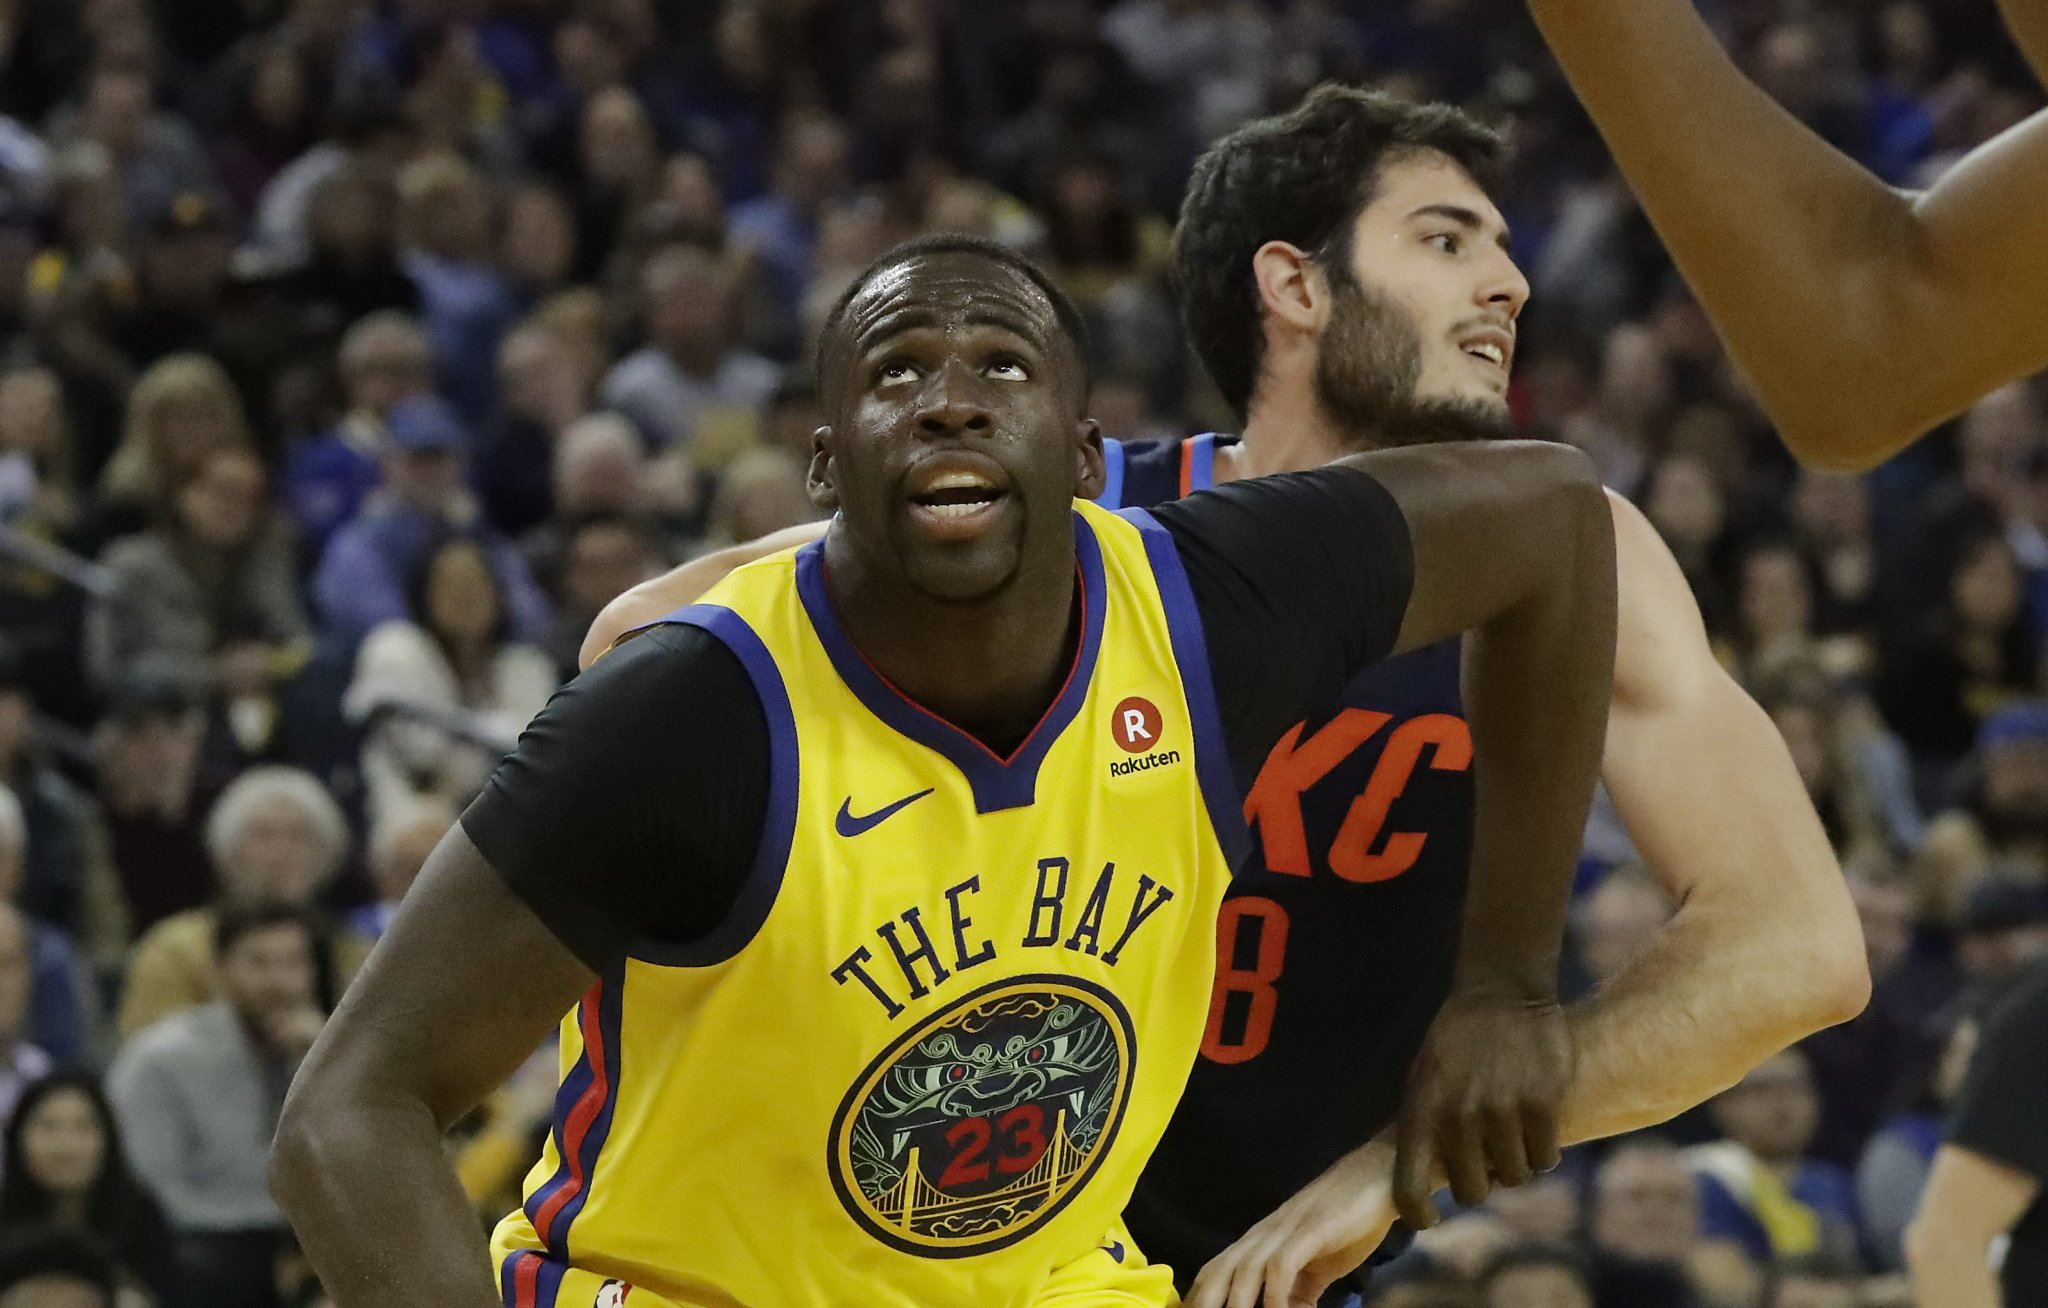 916e1e1e5 Draymond Green has technical rescinded by NBA - SFGate